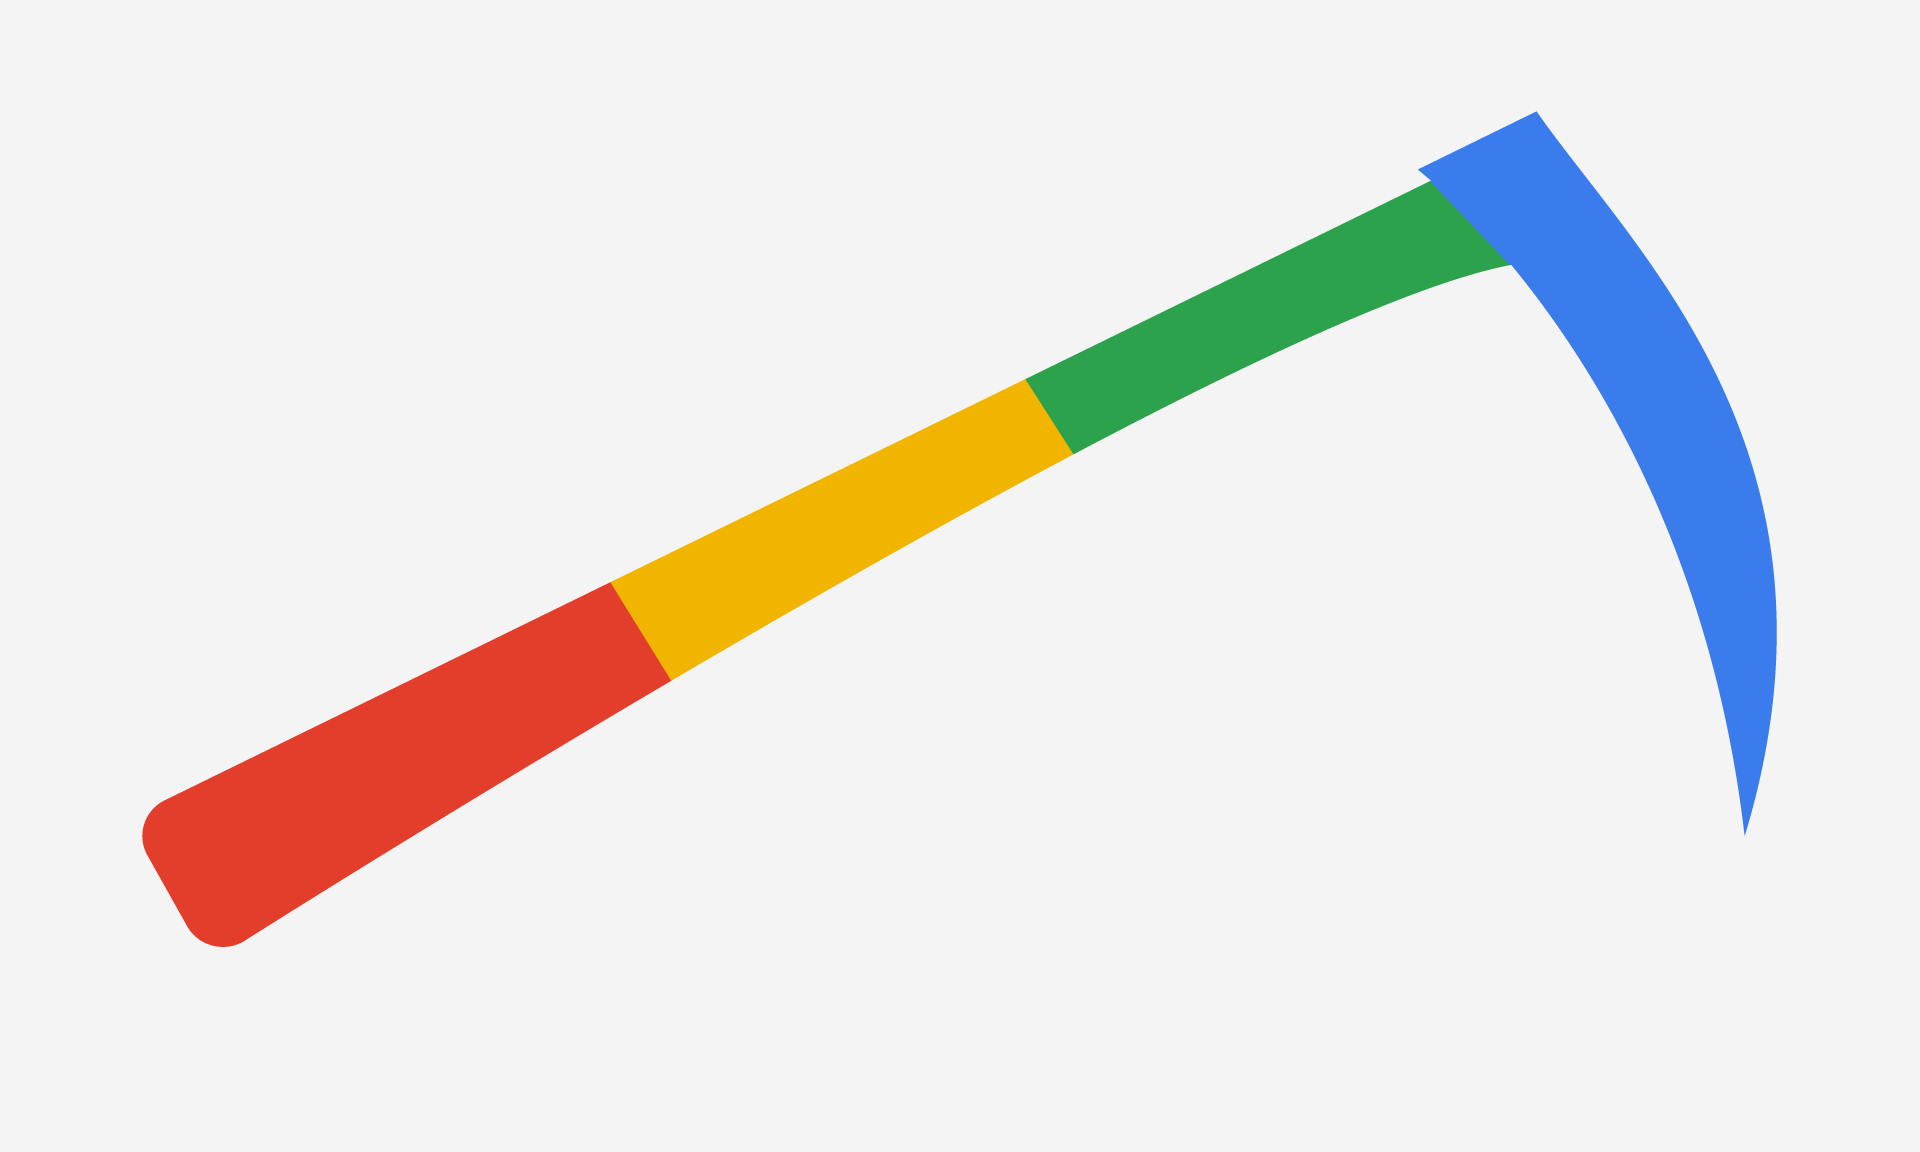 10 Discontinued Google Services That Need To Come Back